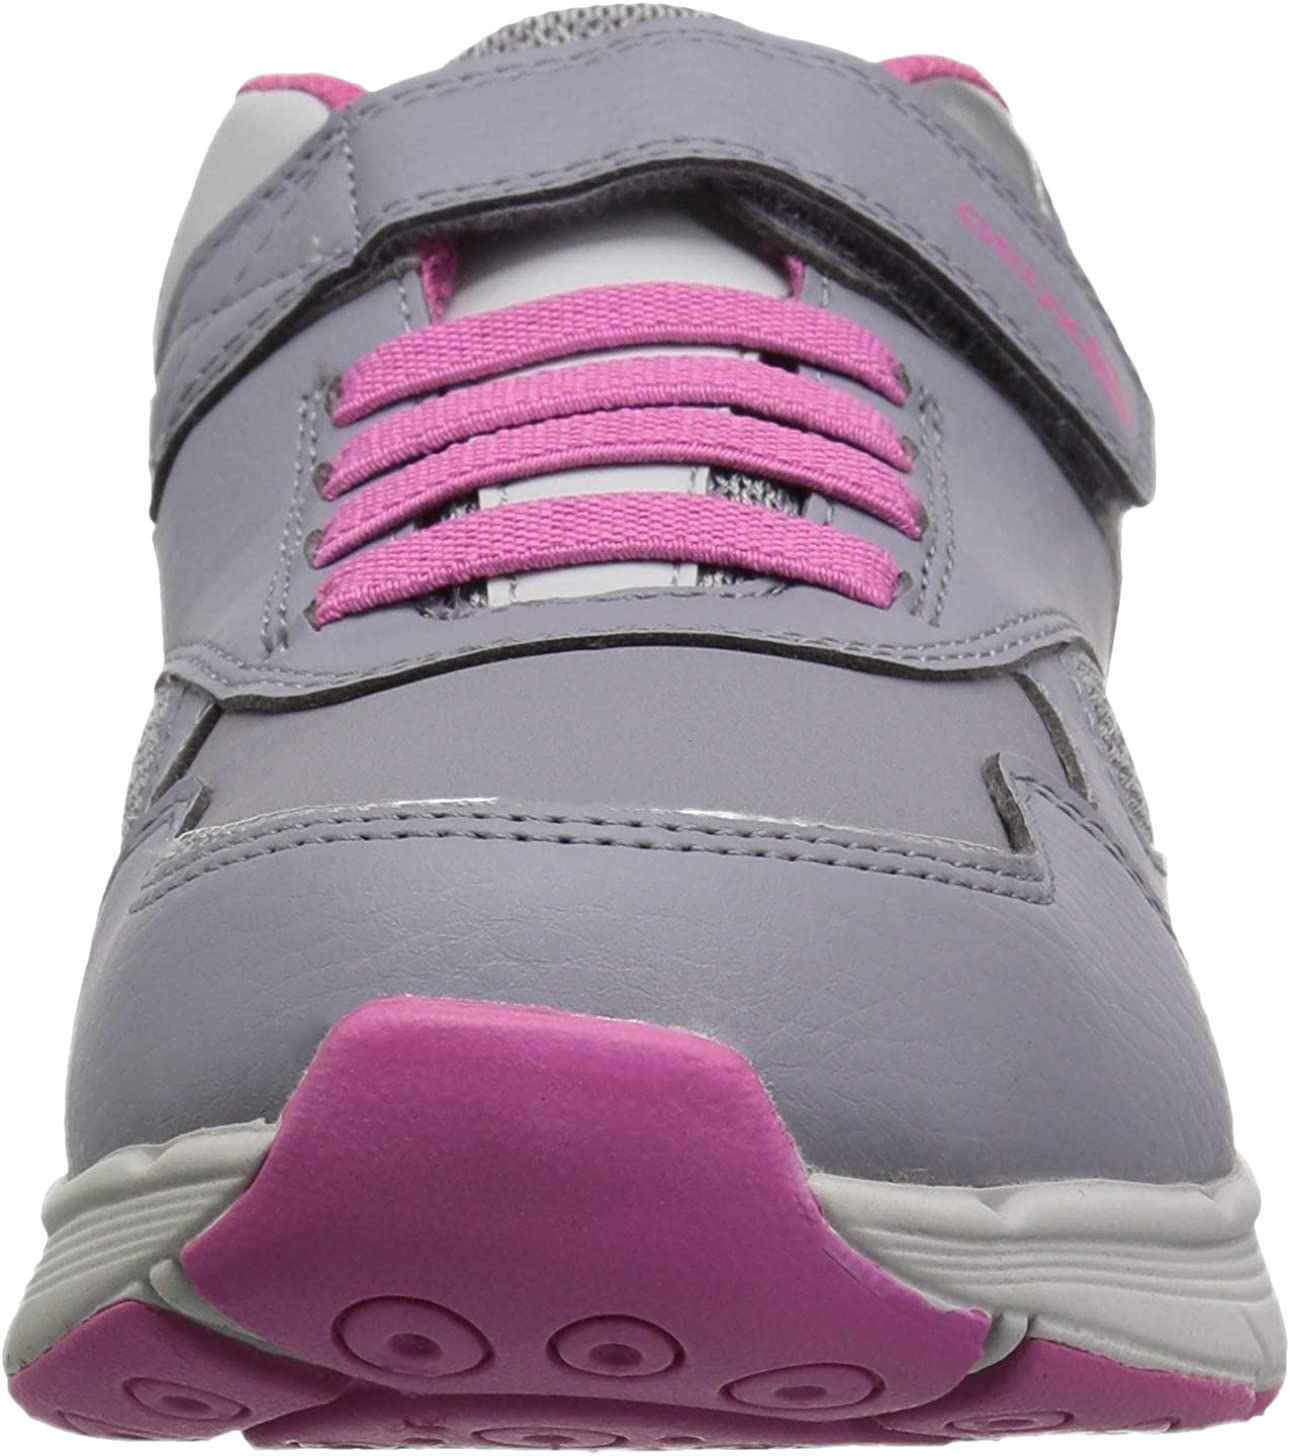 Geox Unisex-Child Hoshiko Girl 4 Velcro Sneaker